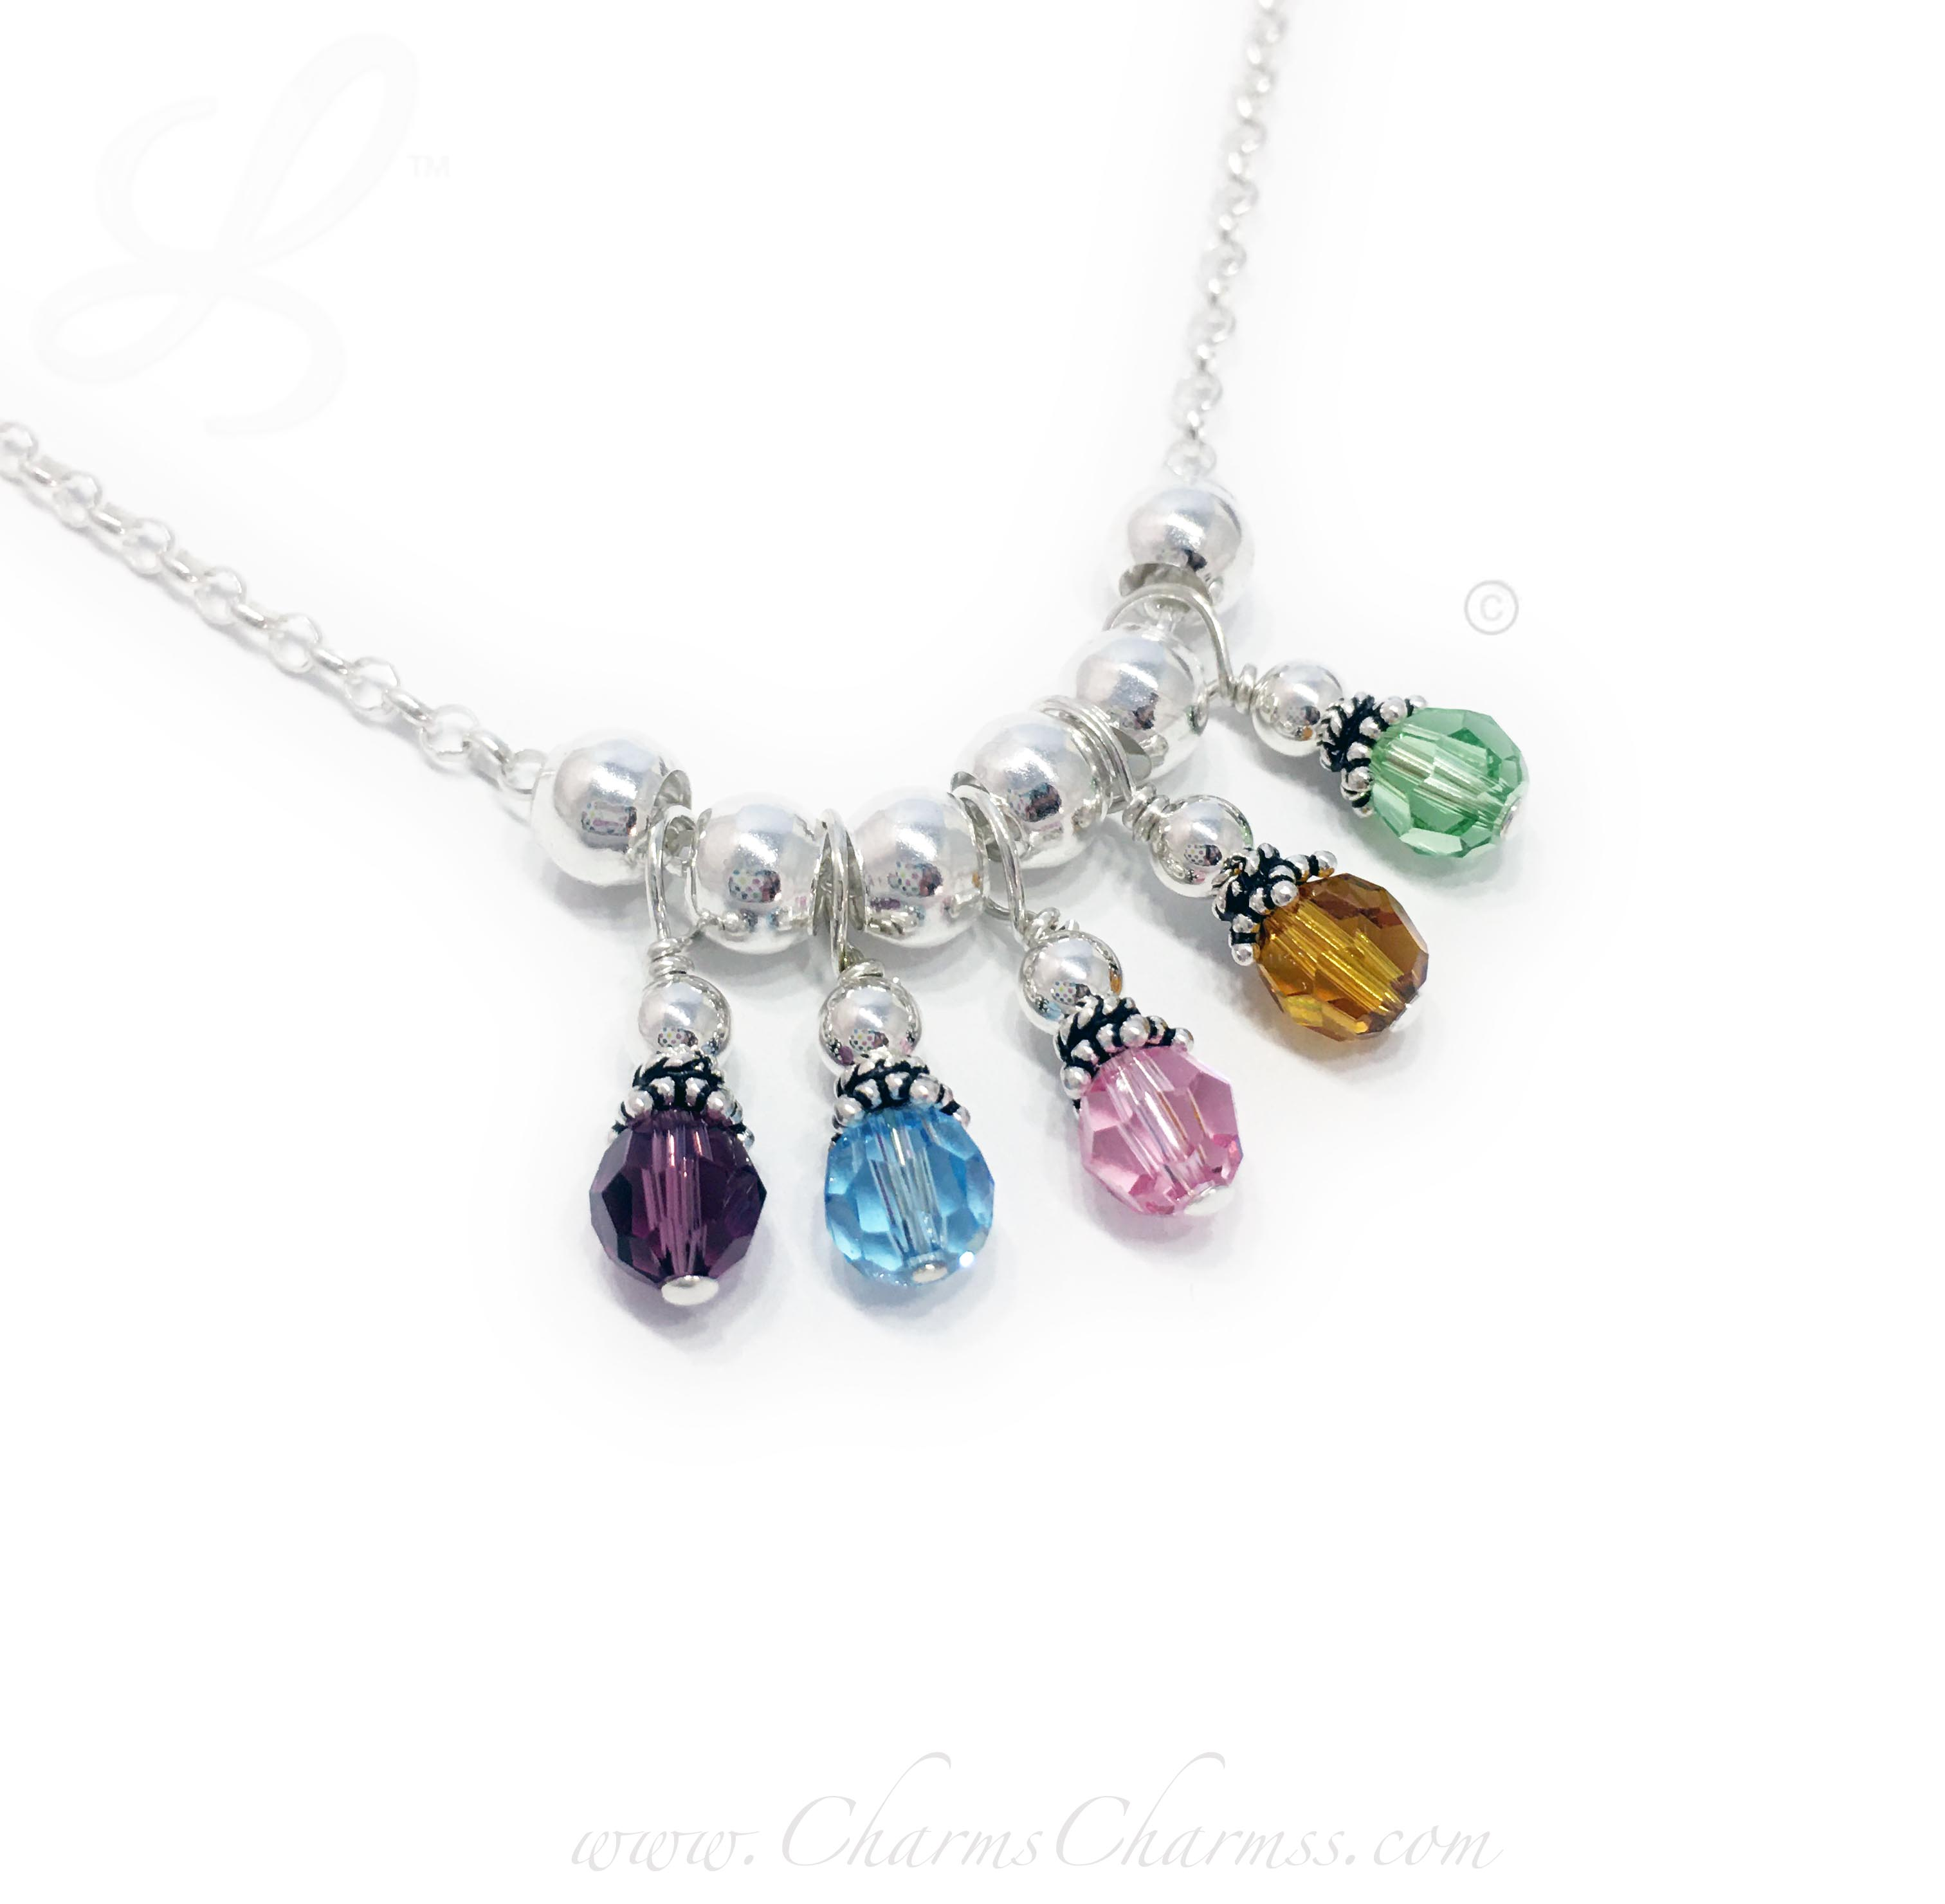 This 5 Birthstone Charm Necklace for grandma is shown with 5 Birthstones representing 5 grandkids: February or Amethyst, March or Aquamarine, October or Opal, November or Golden Topaz and August or Peridot Birthstone Charms.